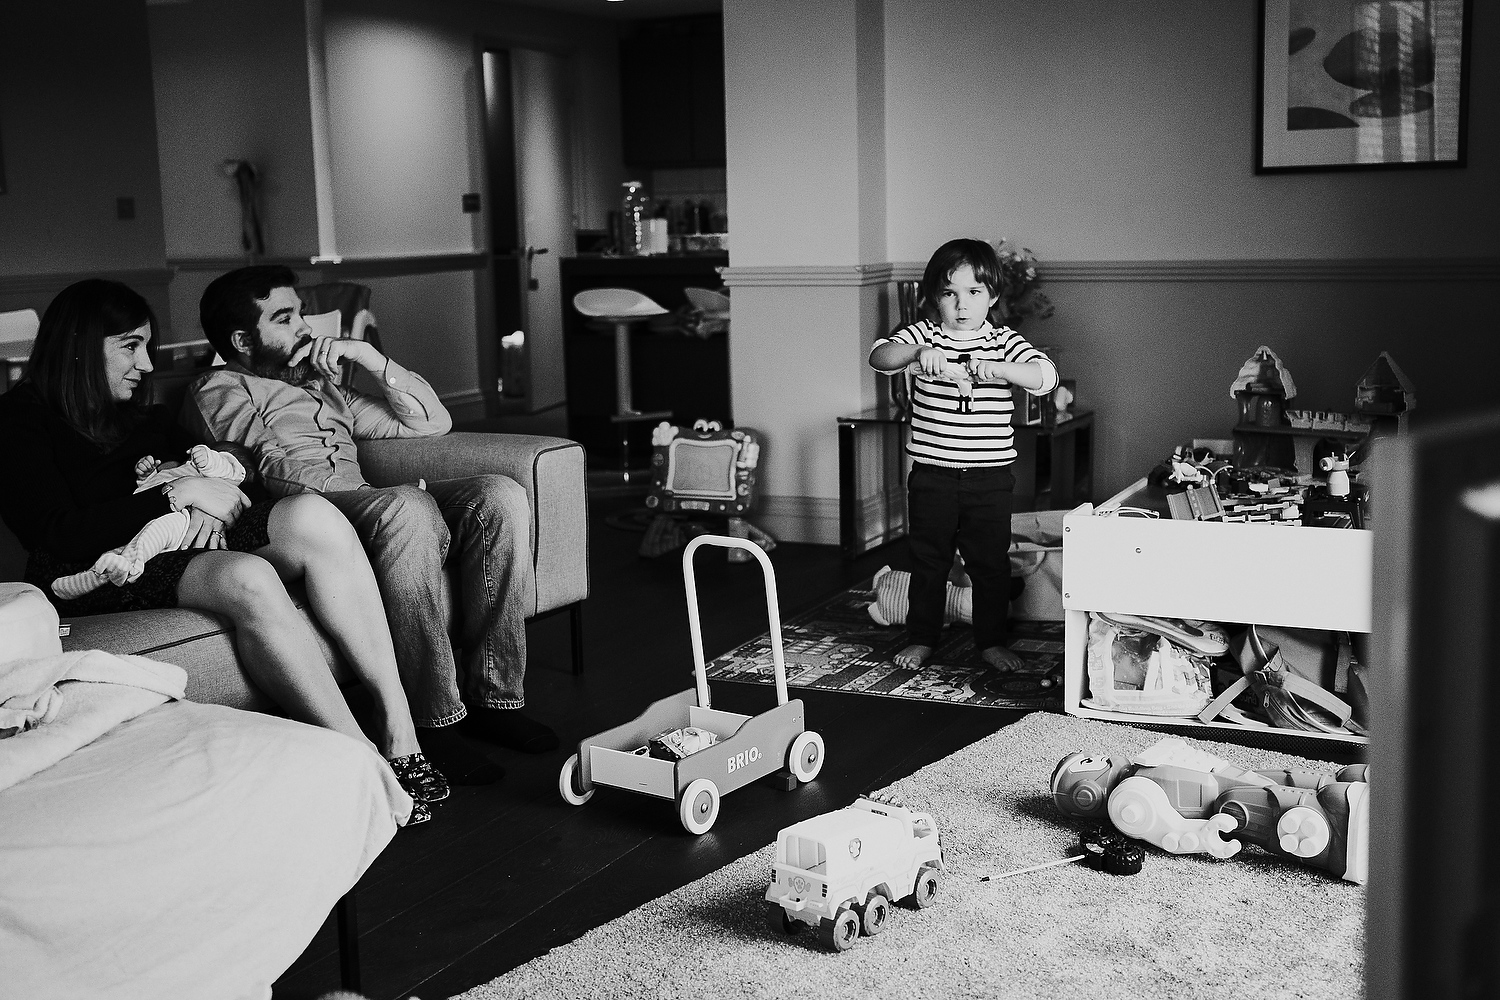 black and white family living room scene newborn photography in hammersmith